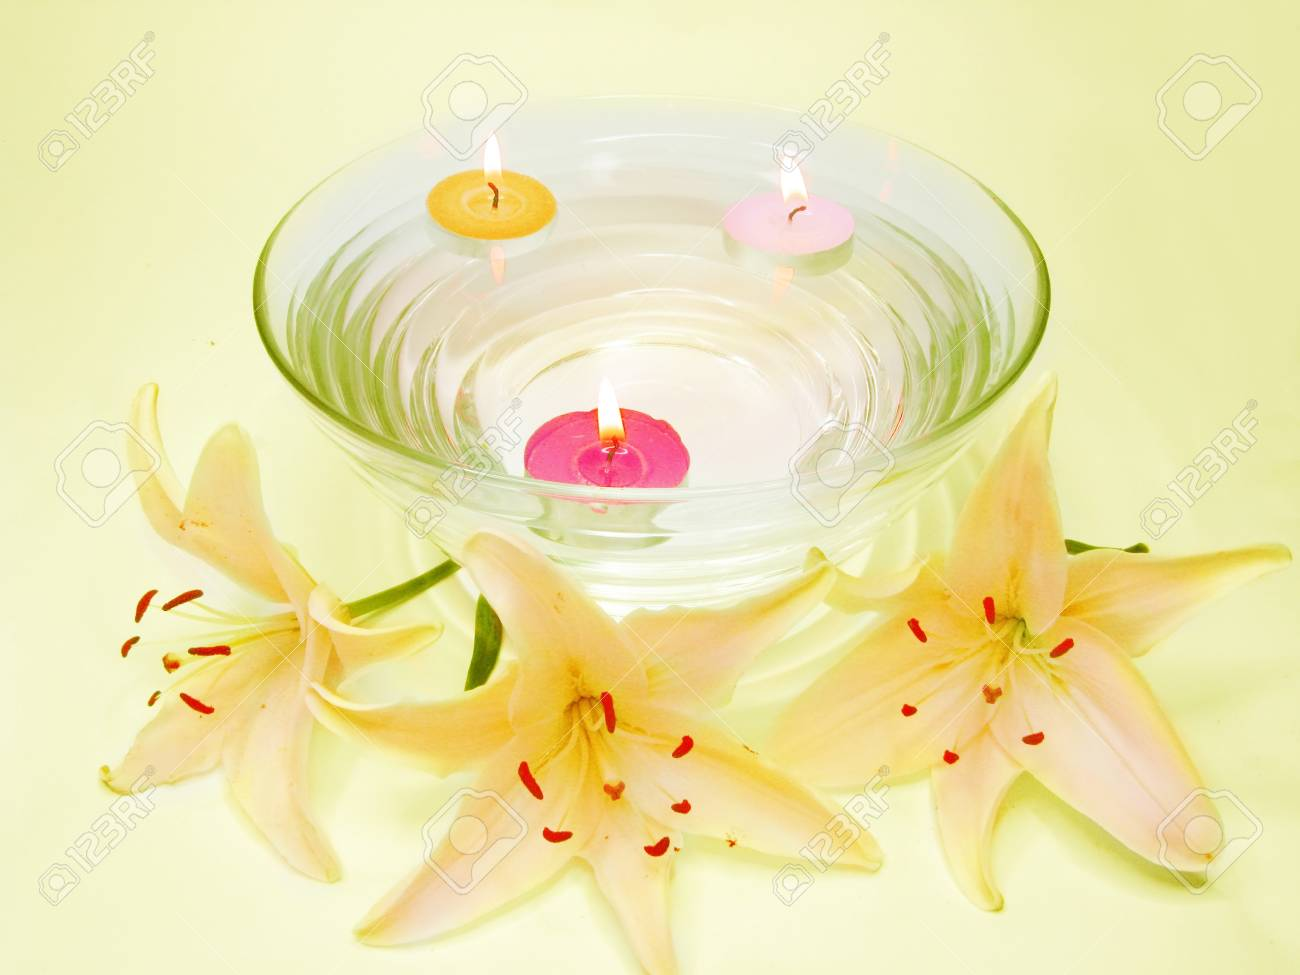 Spa lit candles lilies flowers health care treatment stock photo spa lit candles lilies flowers health care treatment stock photo 11331717 izmirmasajfo